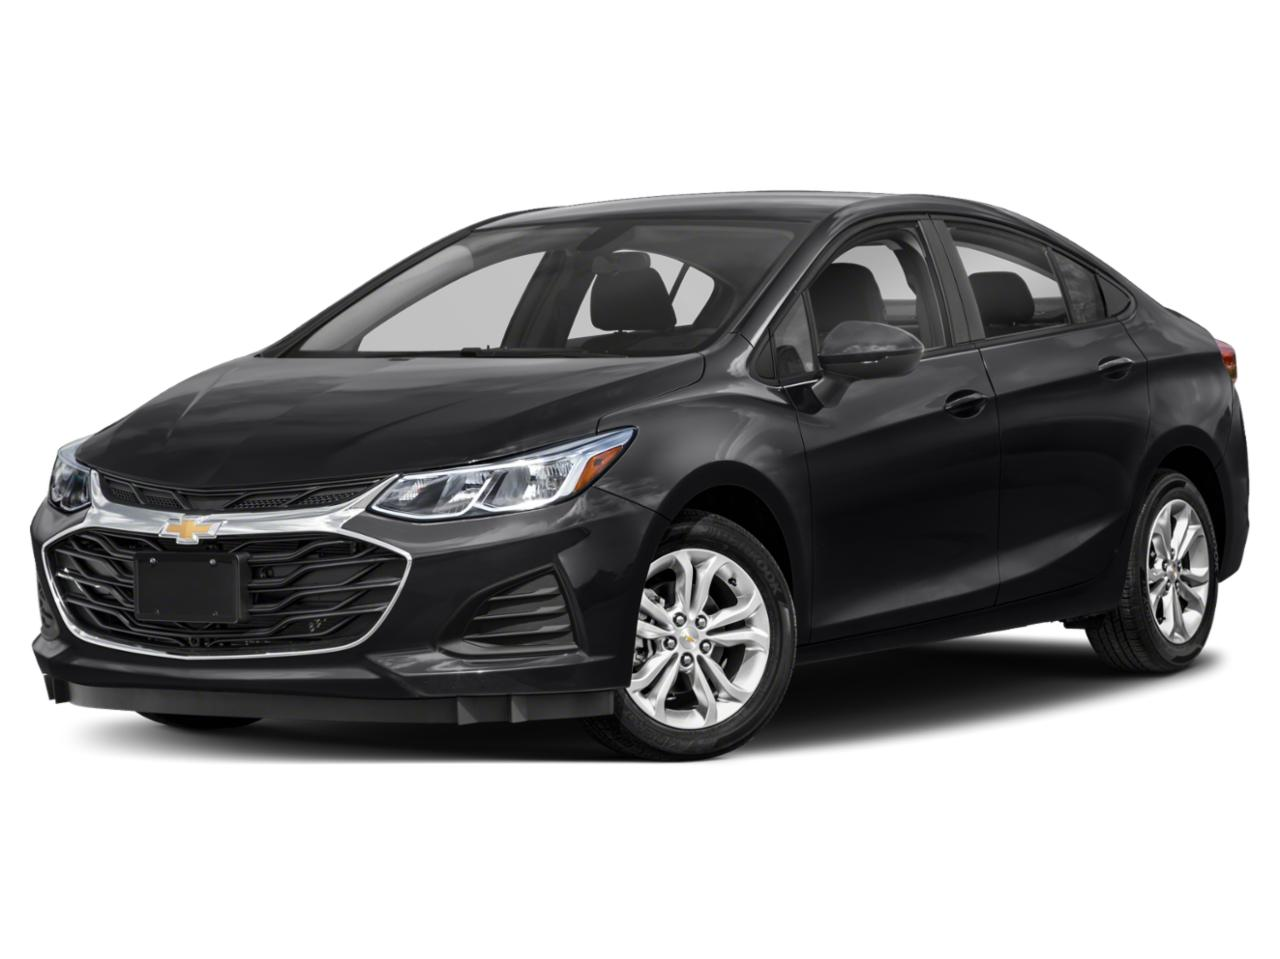 2019 Chevrolet Cruze Vehicle Photo in Nashua, NH 03060